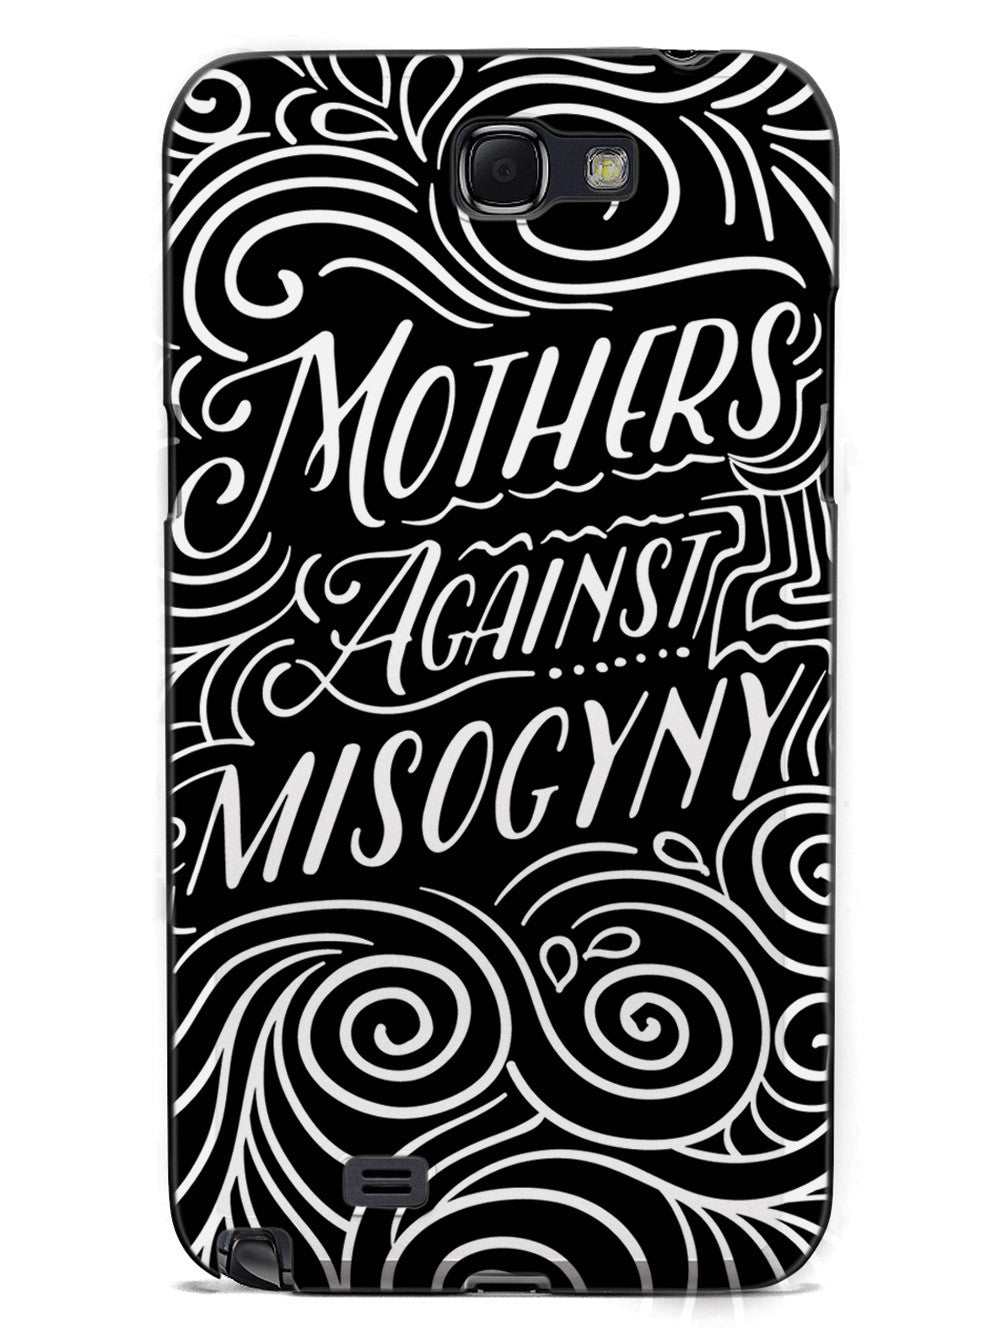 Mothers Against Misogyny  - Black Case